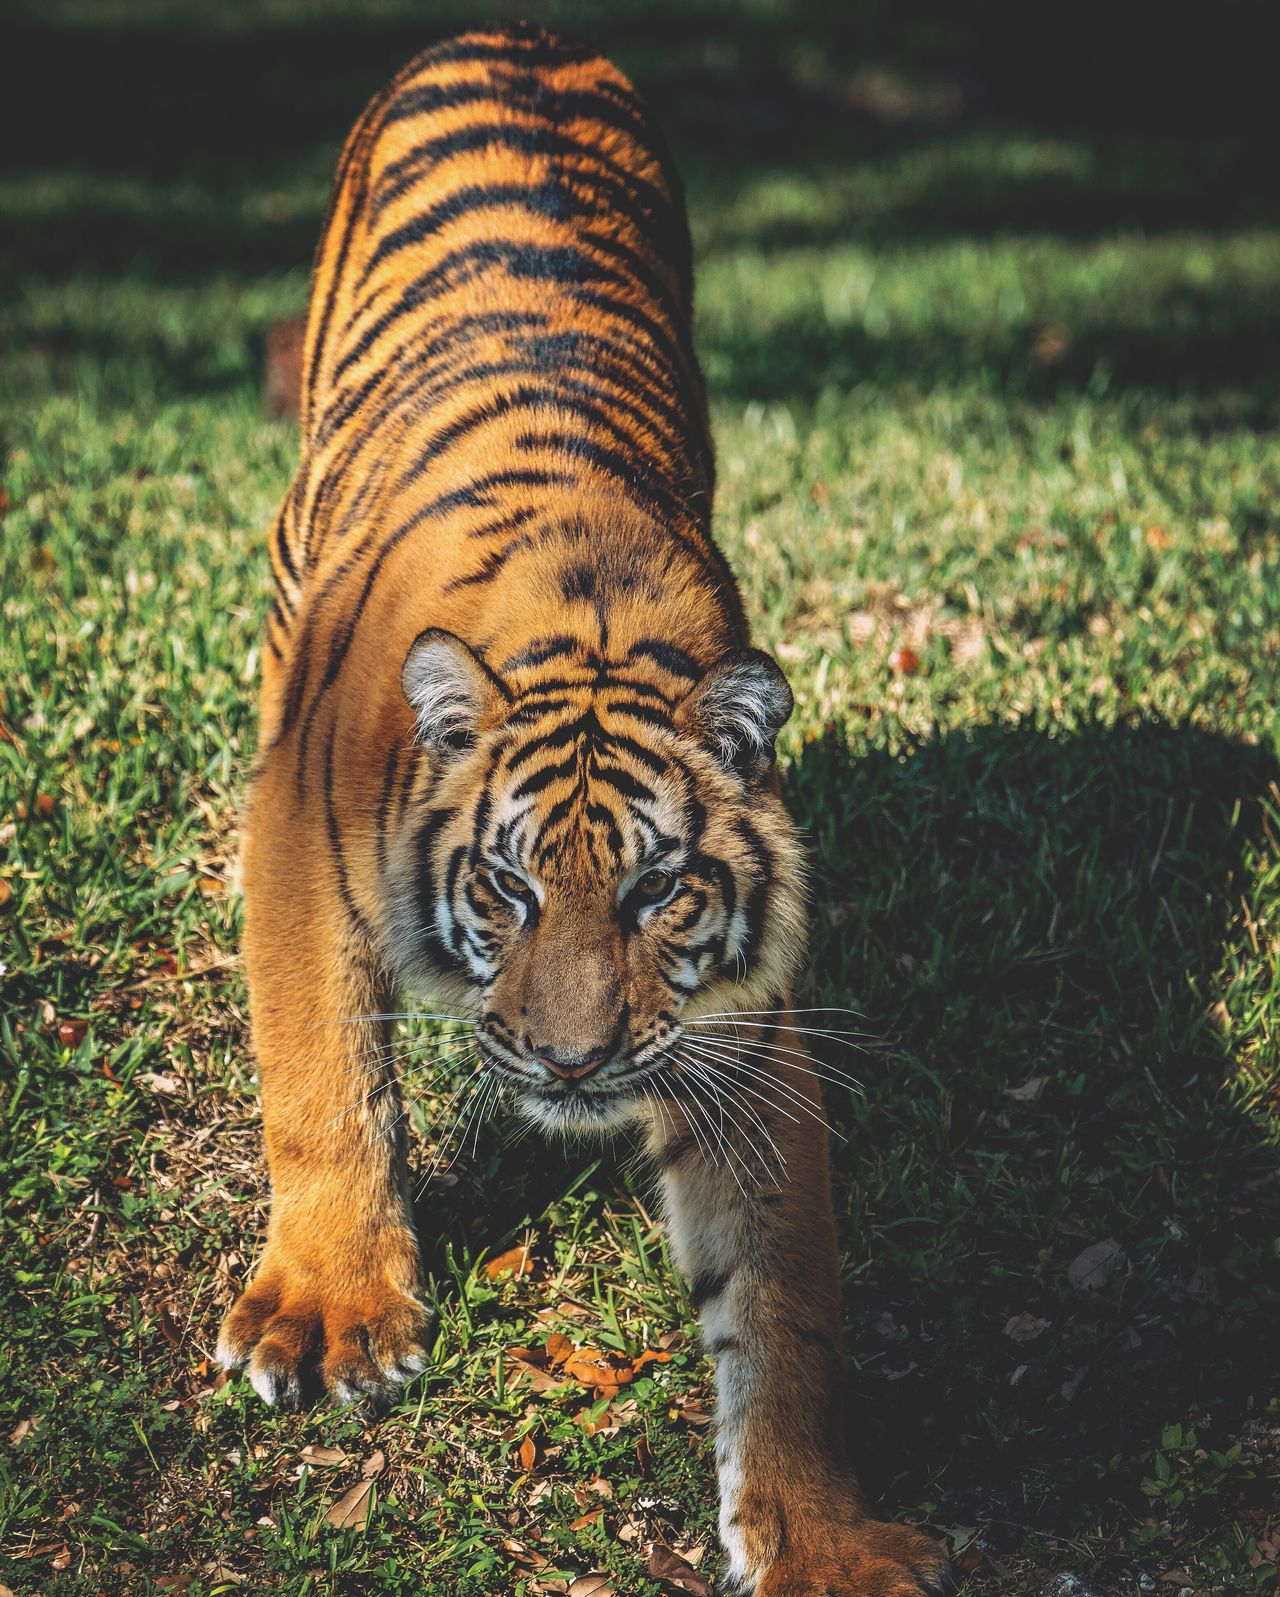 Animal Themes One Animal Grass Mammal Tiger Animals In The Wild No People Animal Markings Day Outdoors Nature Finding New Frontiers Eye4photography  EyeEm Best Shots Portrait Photography Creativity Multi Colored Portraits Animal Wildlife